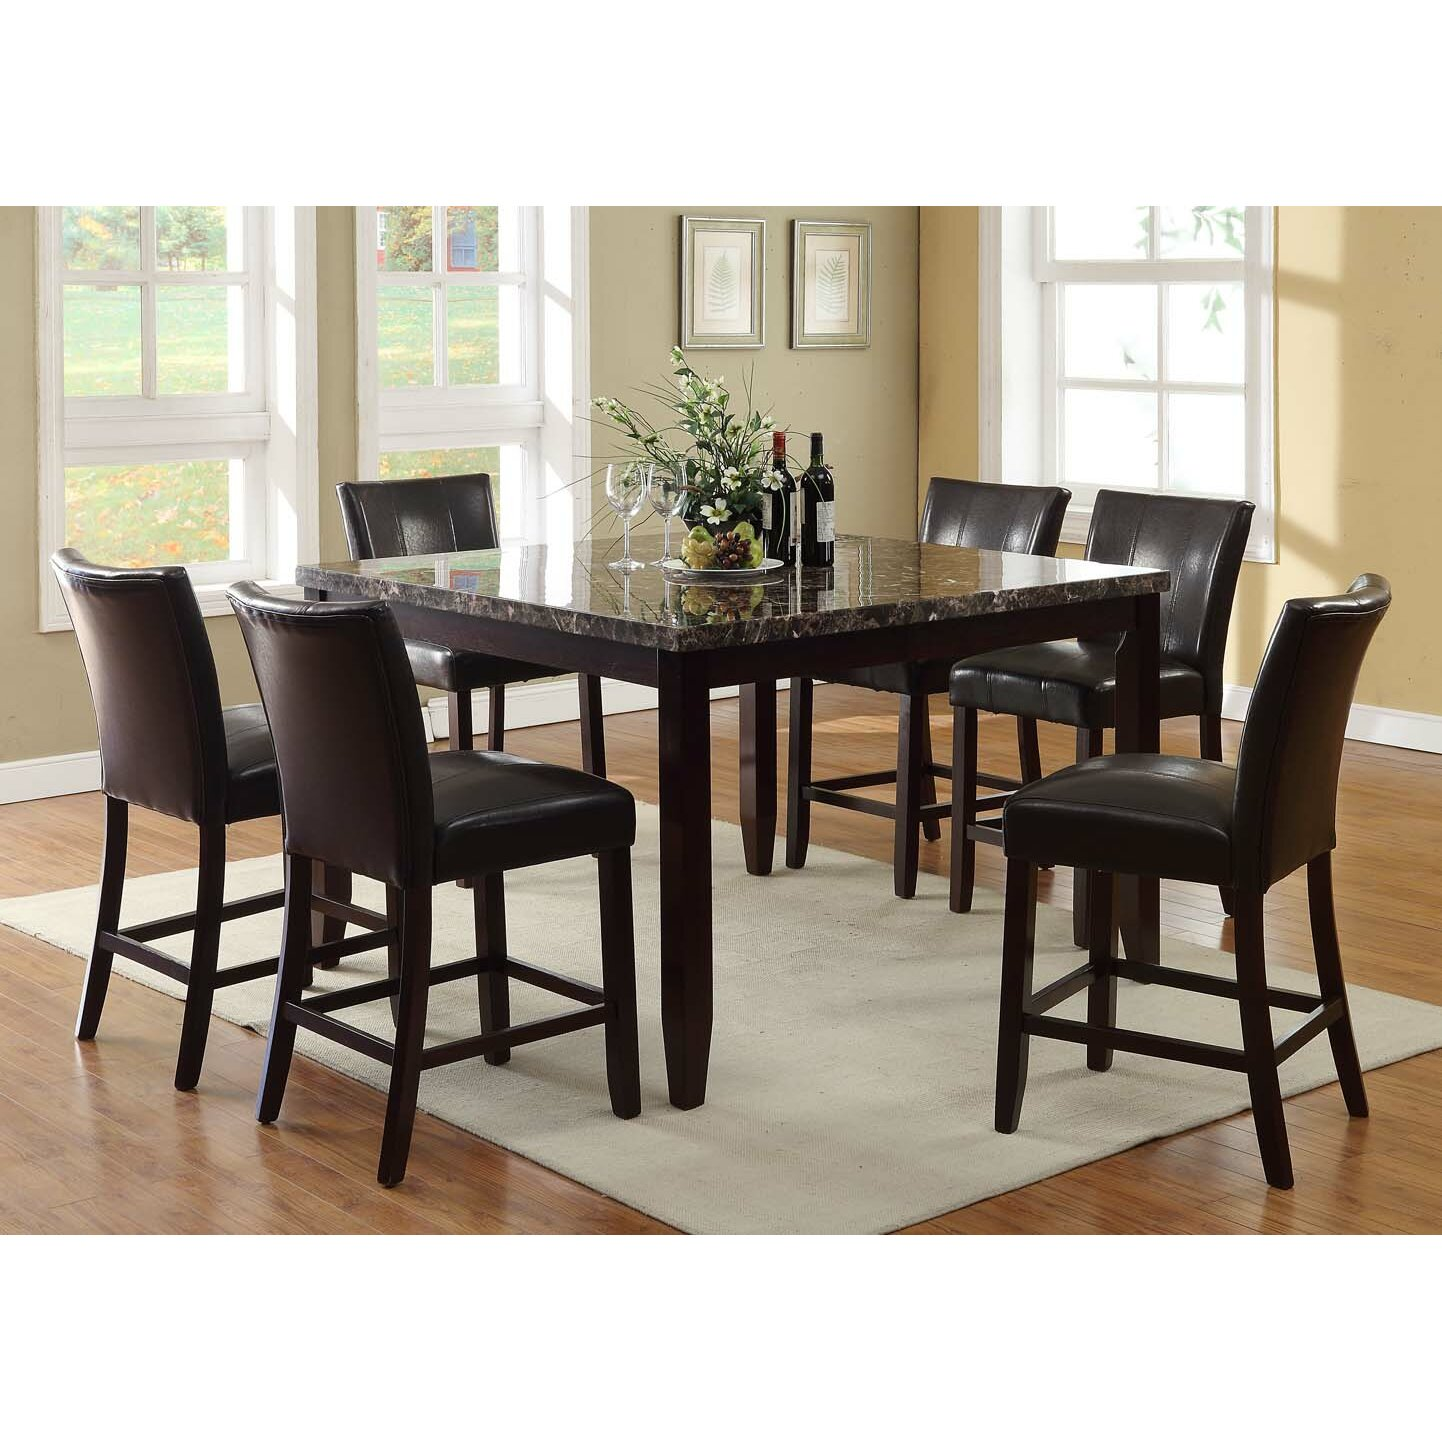 Living In Style Harvard 7 Piece Counter Height Dining Set ...